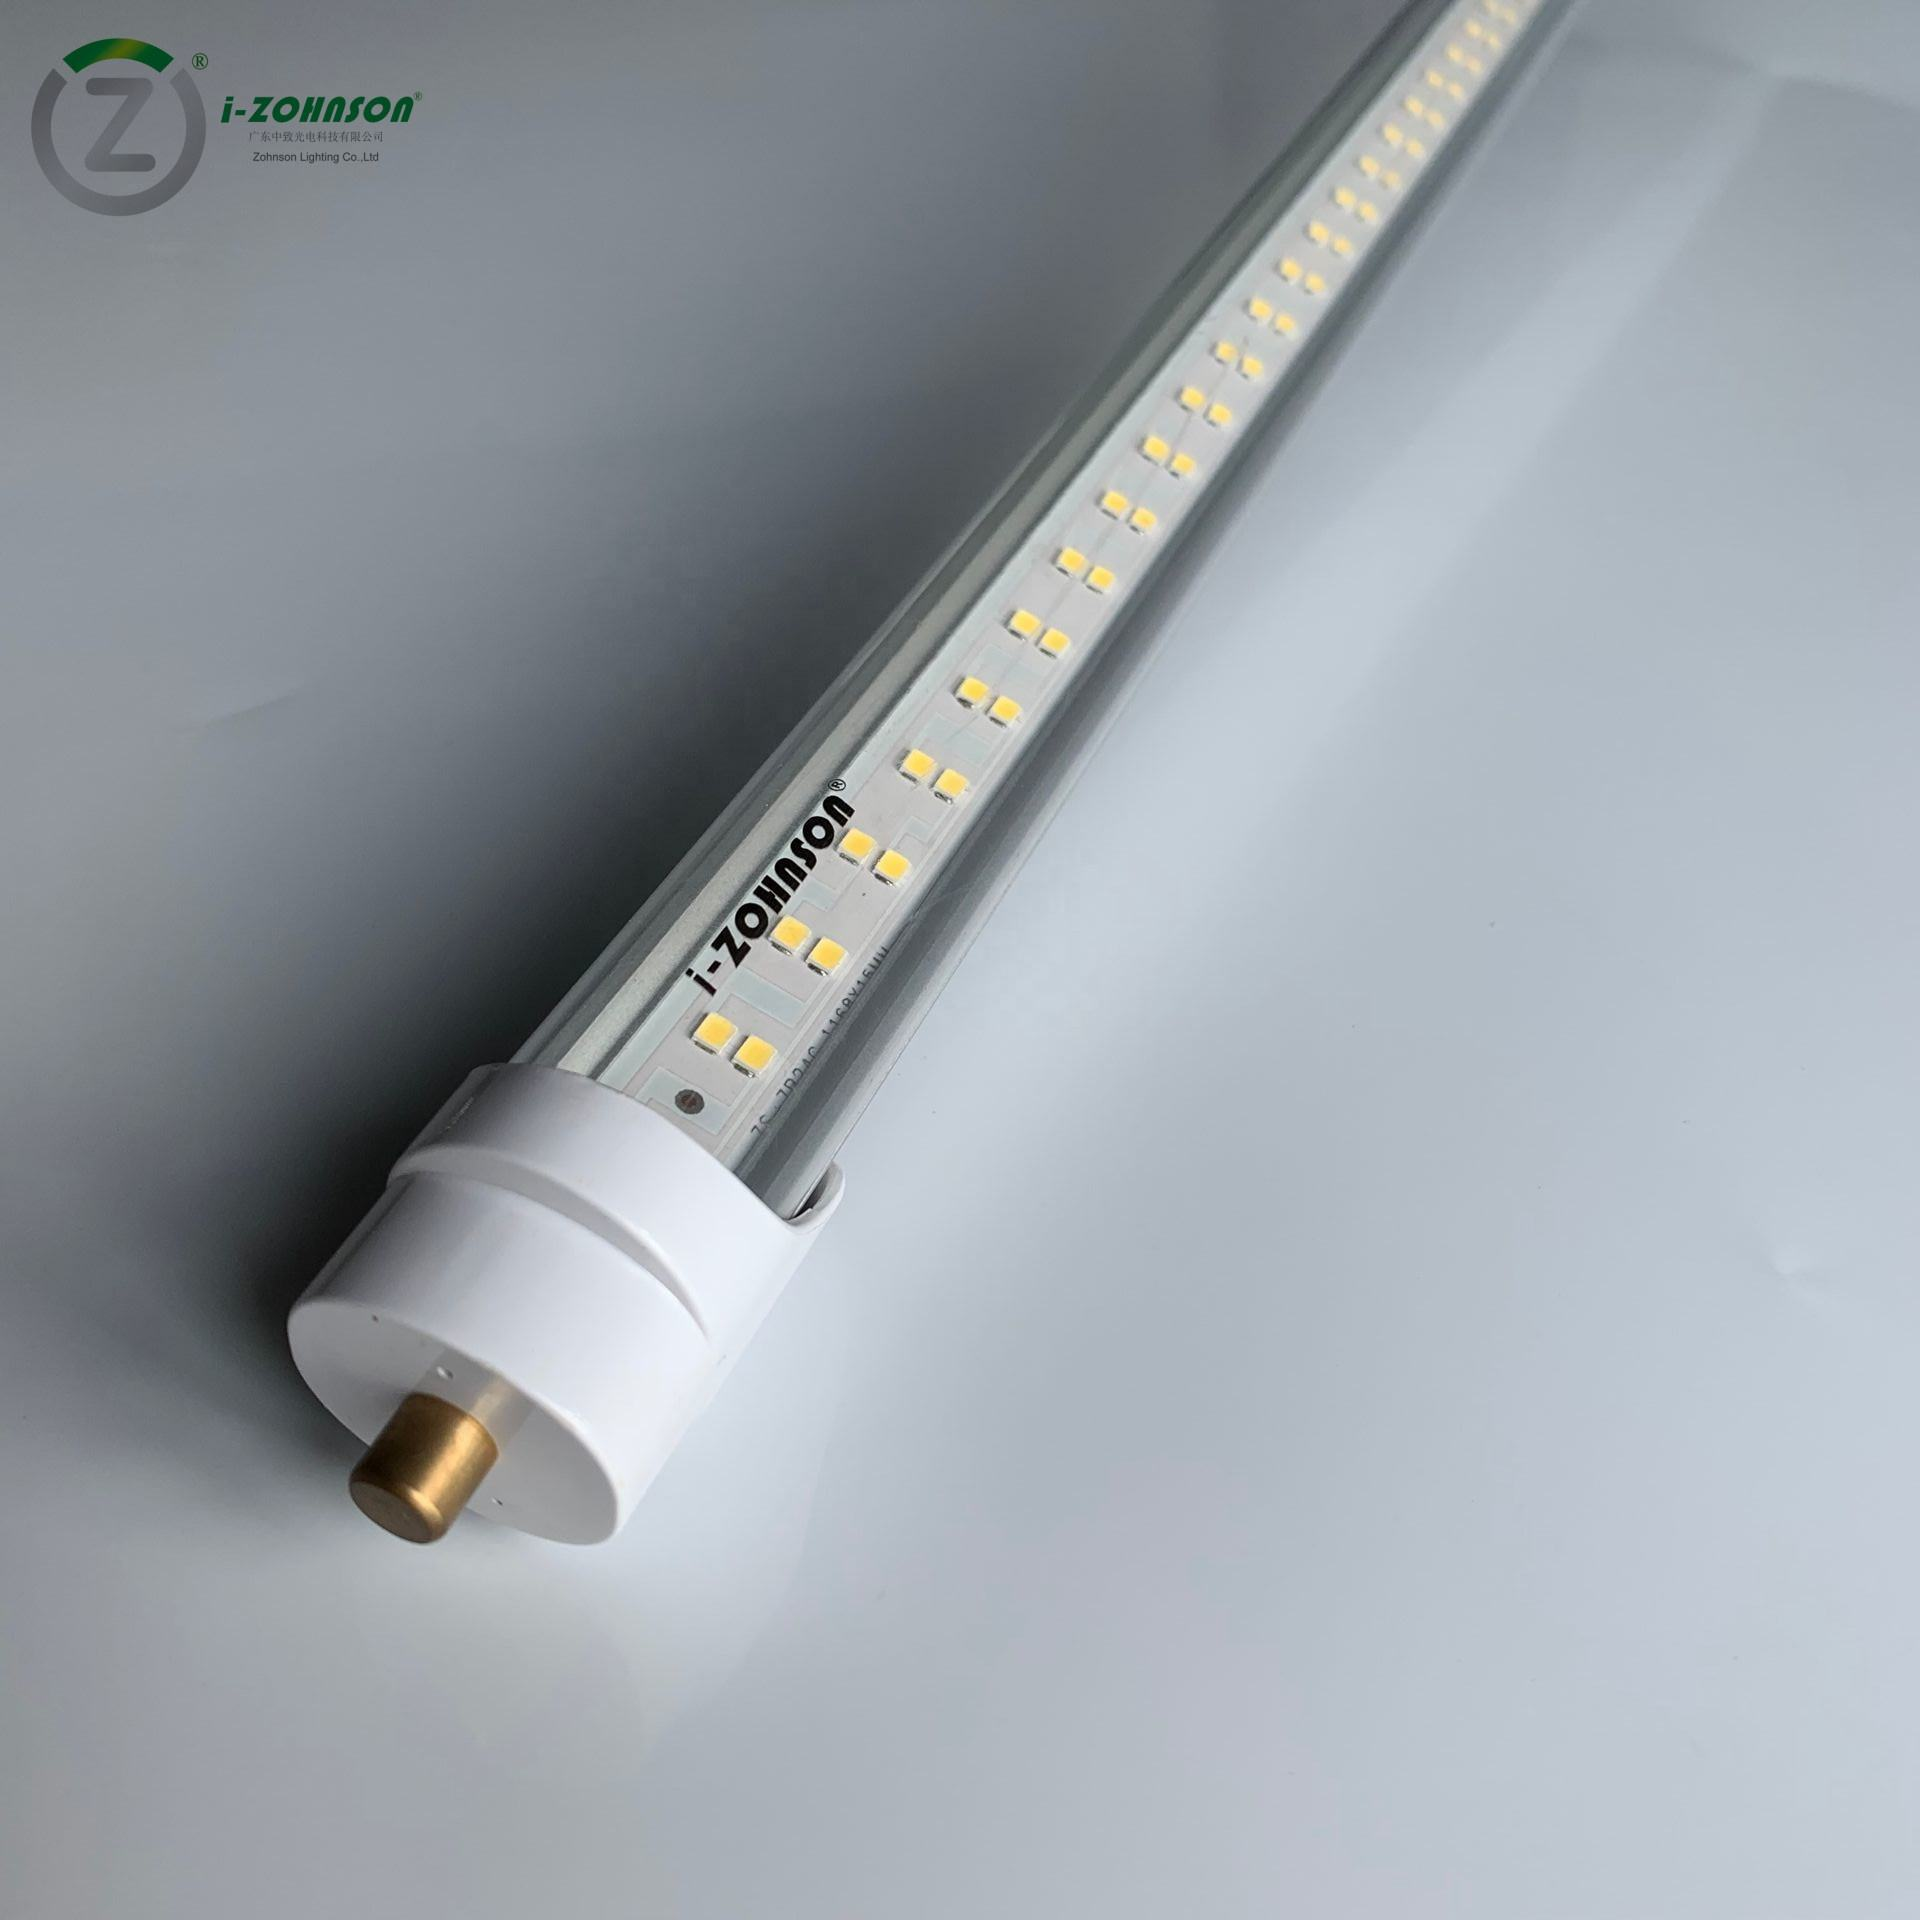 Factory Wholesale T8 Led Tube Light Lamp 8FT 40W(75W equivalent) T8 Single Pin FA8 End Cap Ballast Bypass